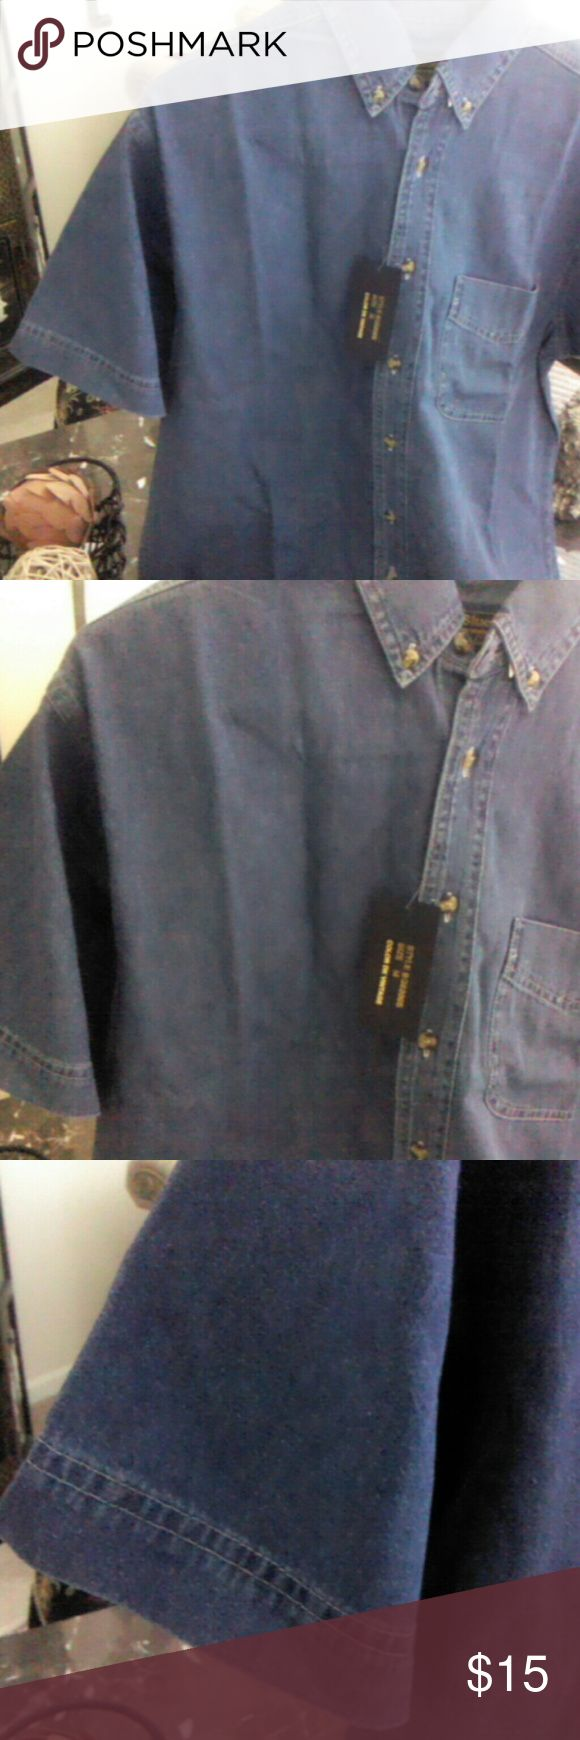 Short sleeve jean shirt for men Blue jean, pocket, button down, & short sleeves Tops Button Down Shirts